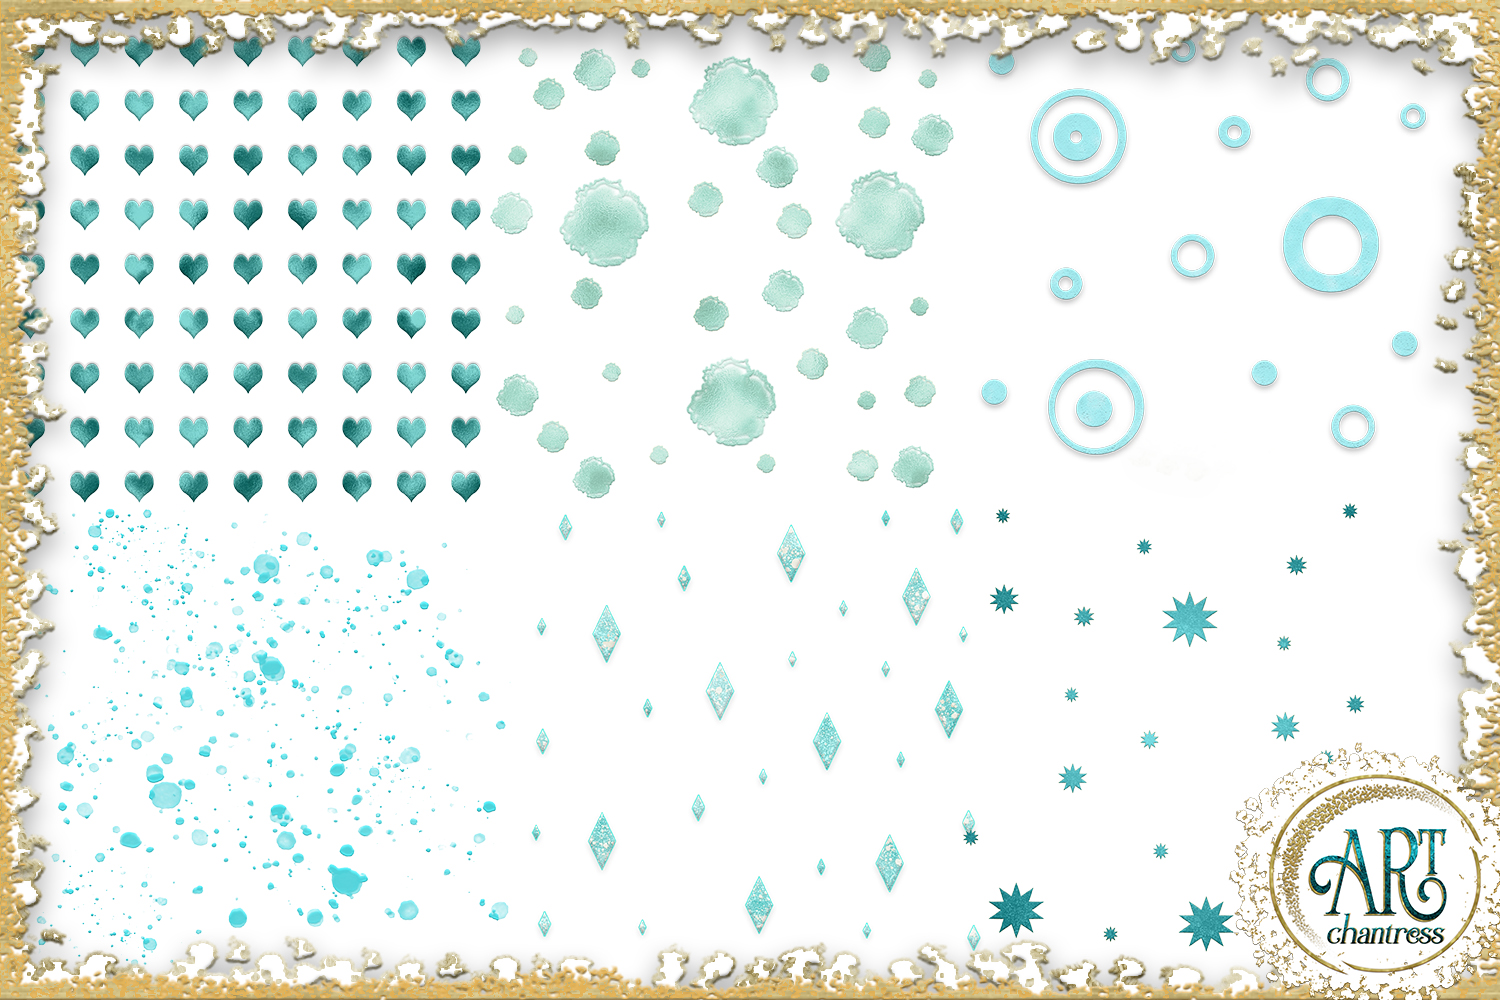 Teal Aqua Foil Glitter Seamless Digital Papers,Borders Set example image 4